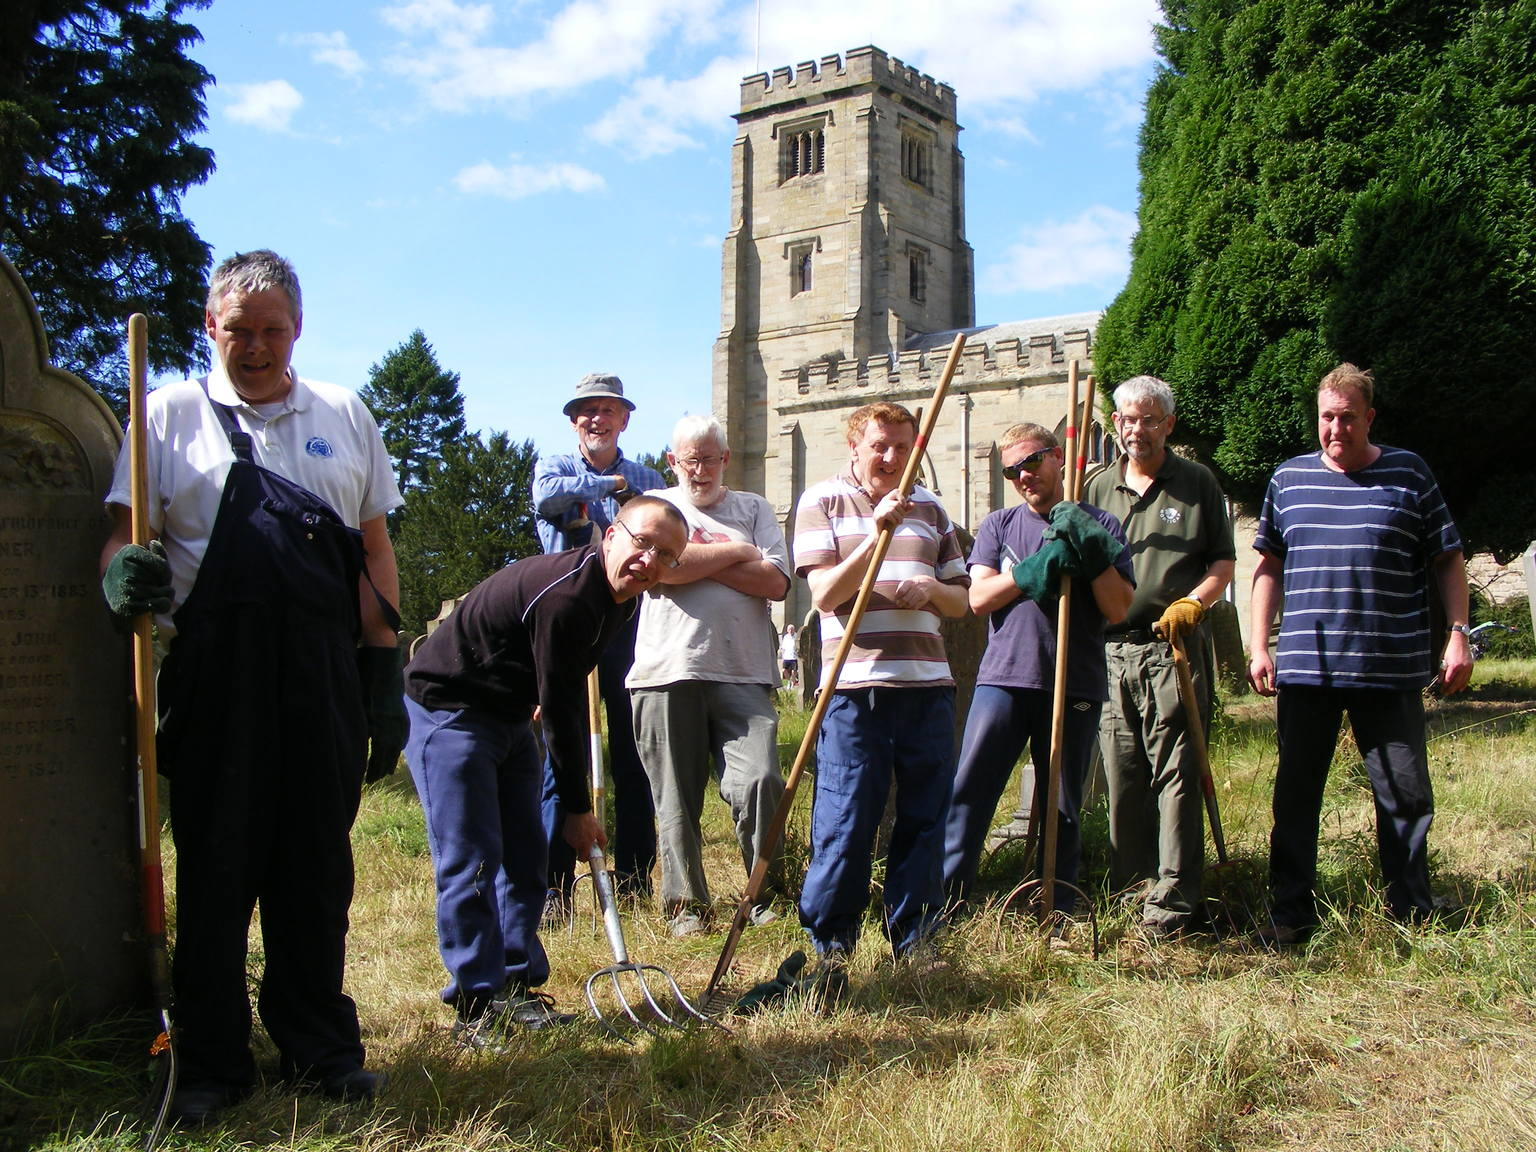 The group in a churchyard posing with tools after raking up following a meadow cut.